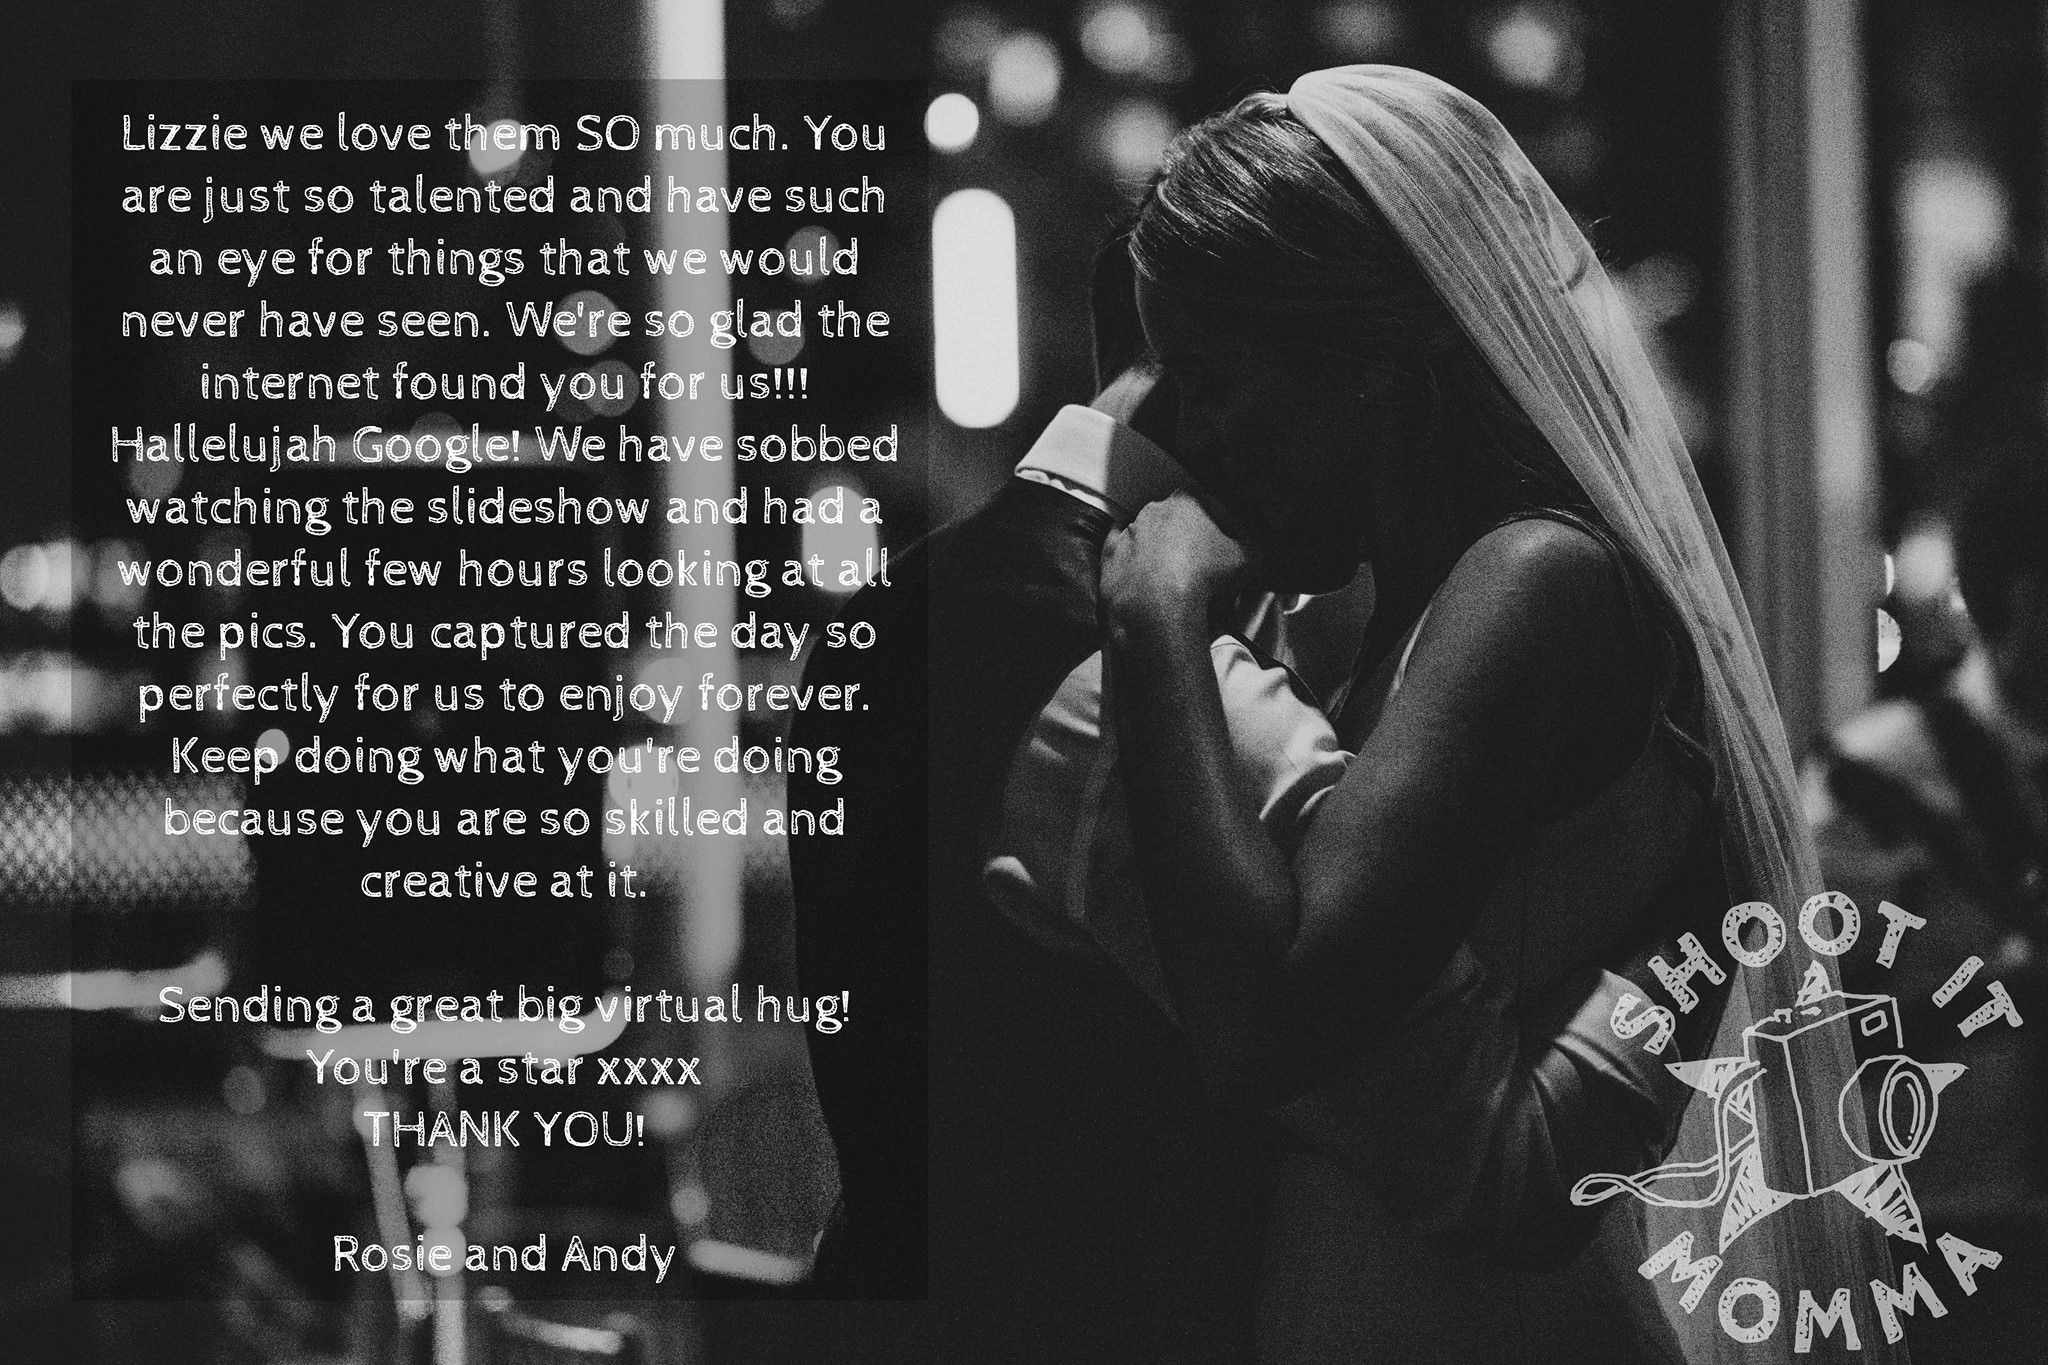 Rosie & Andy